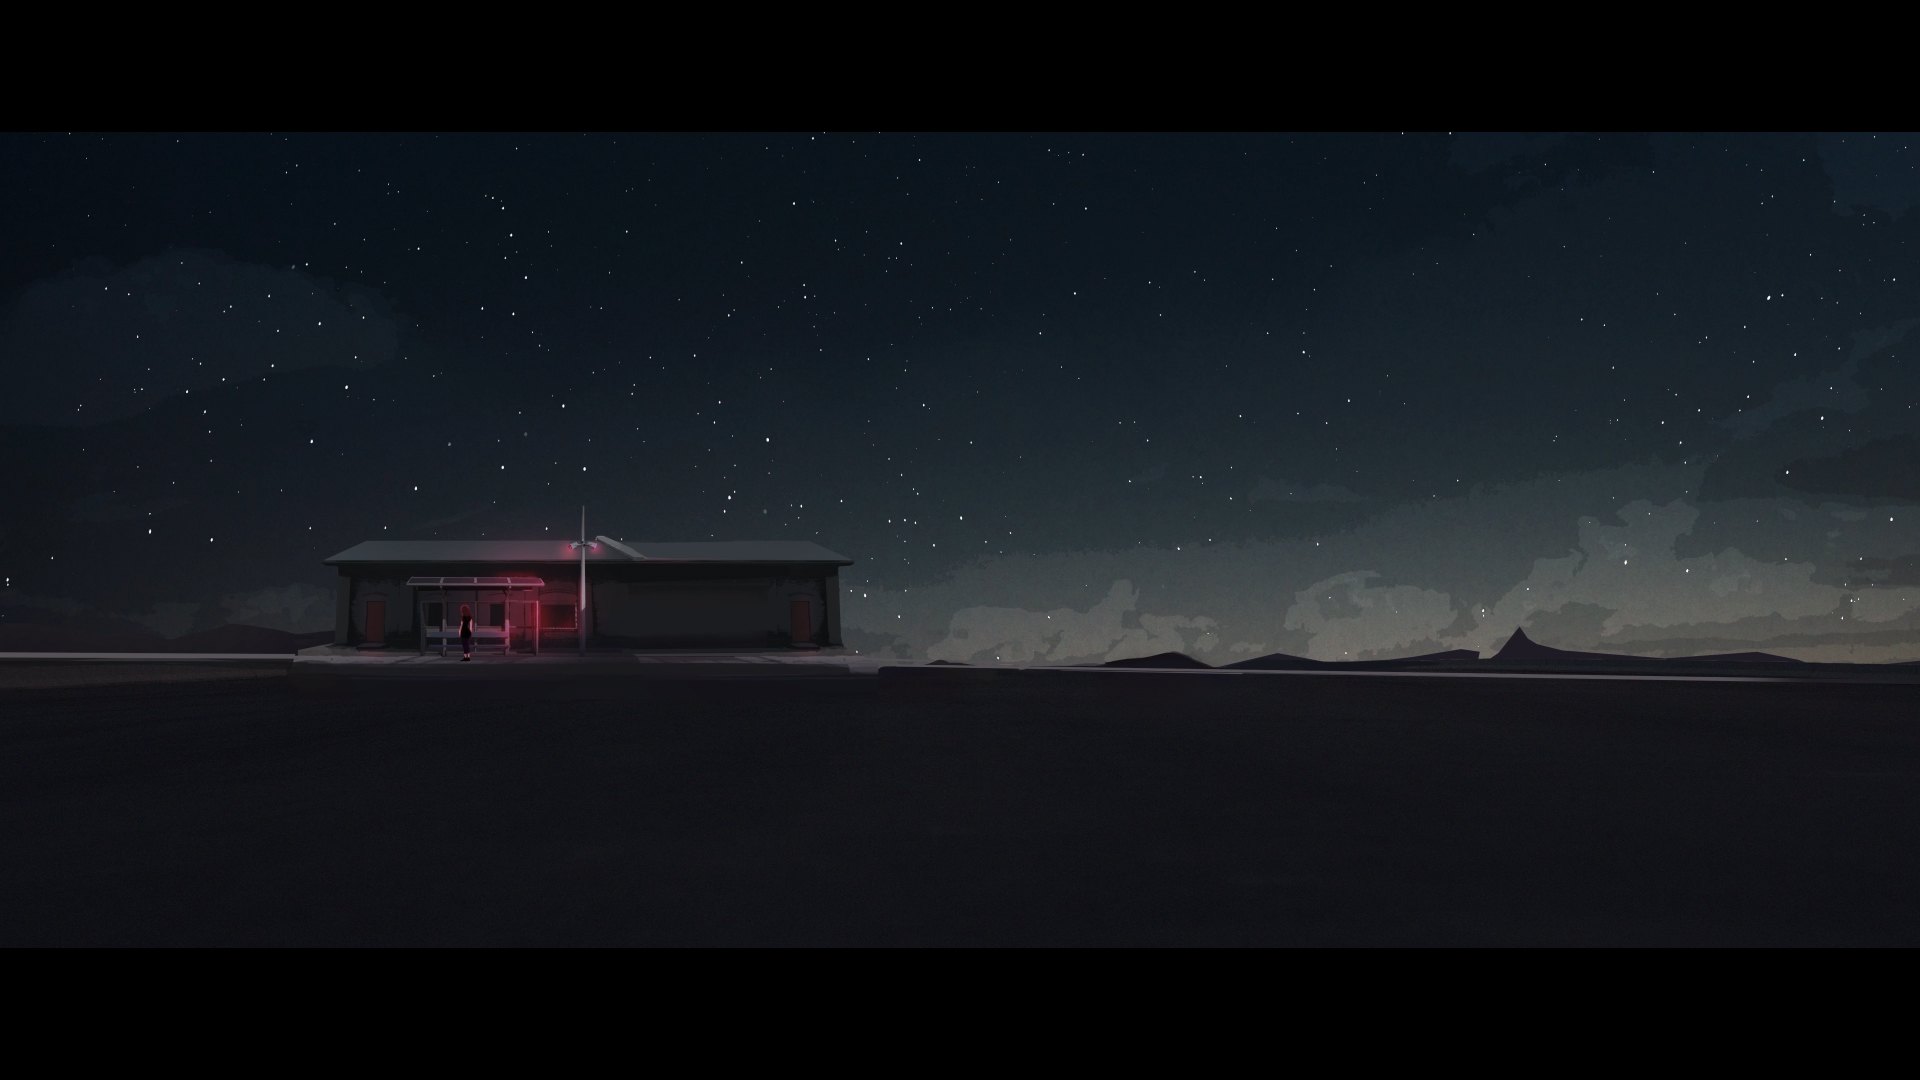 Illustration of a lonely train station in the middle of nowhere